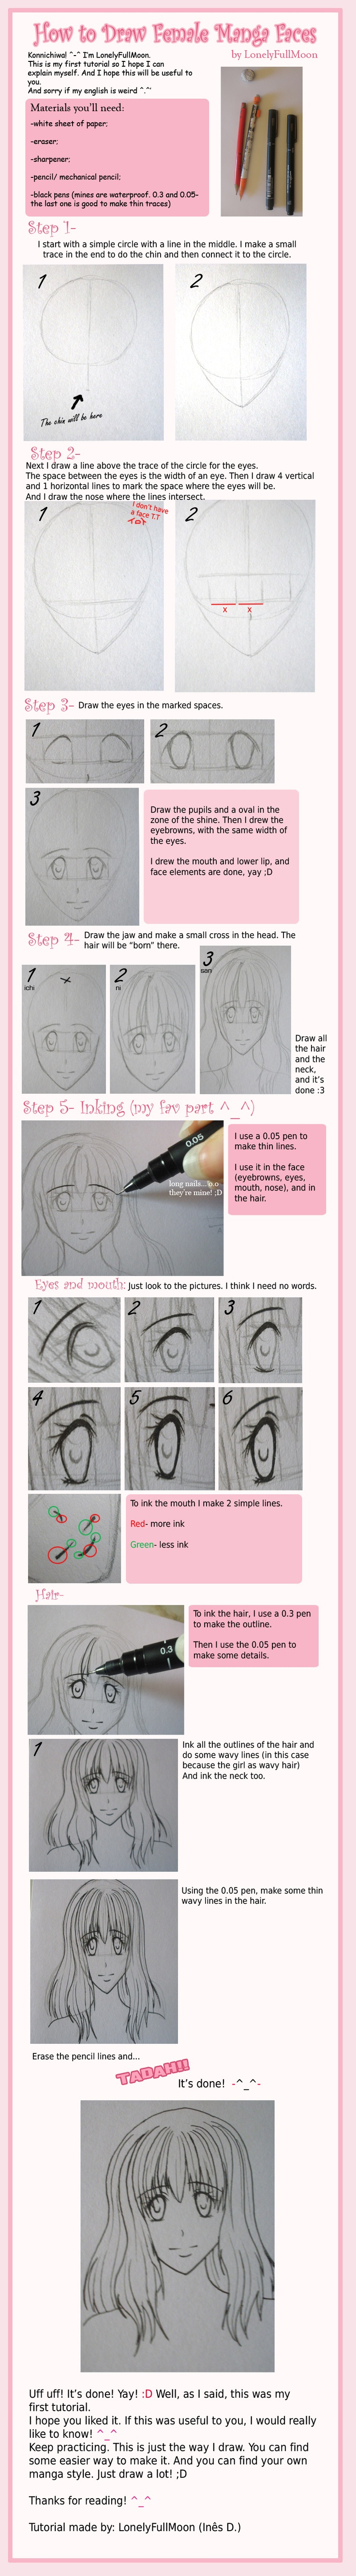 How to Draw Female Manga Faces by LonelyFullMoon on deviantART